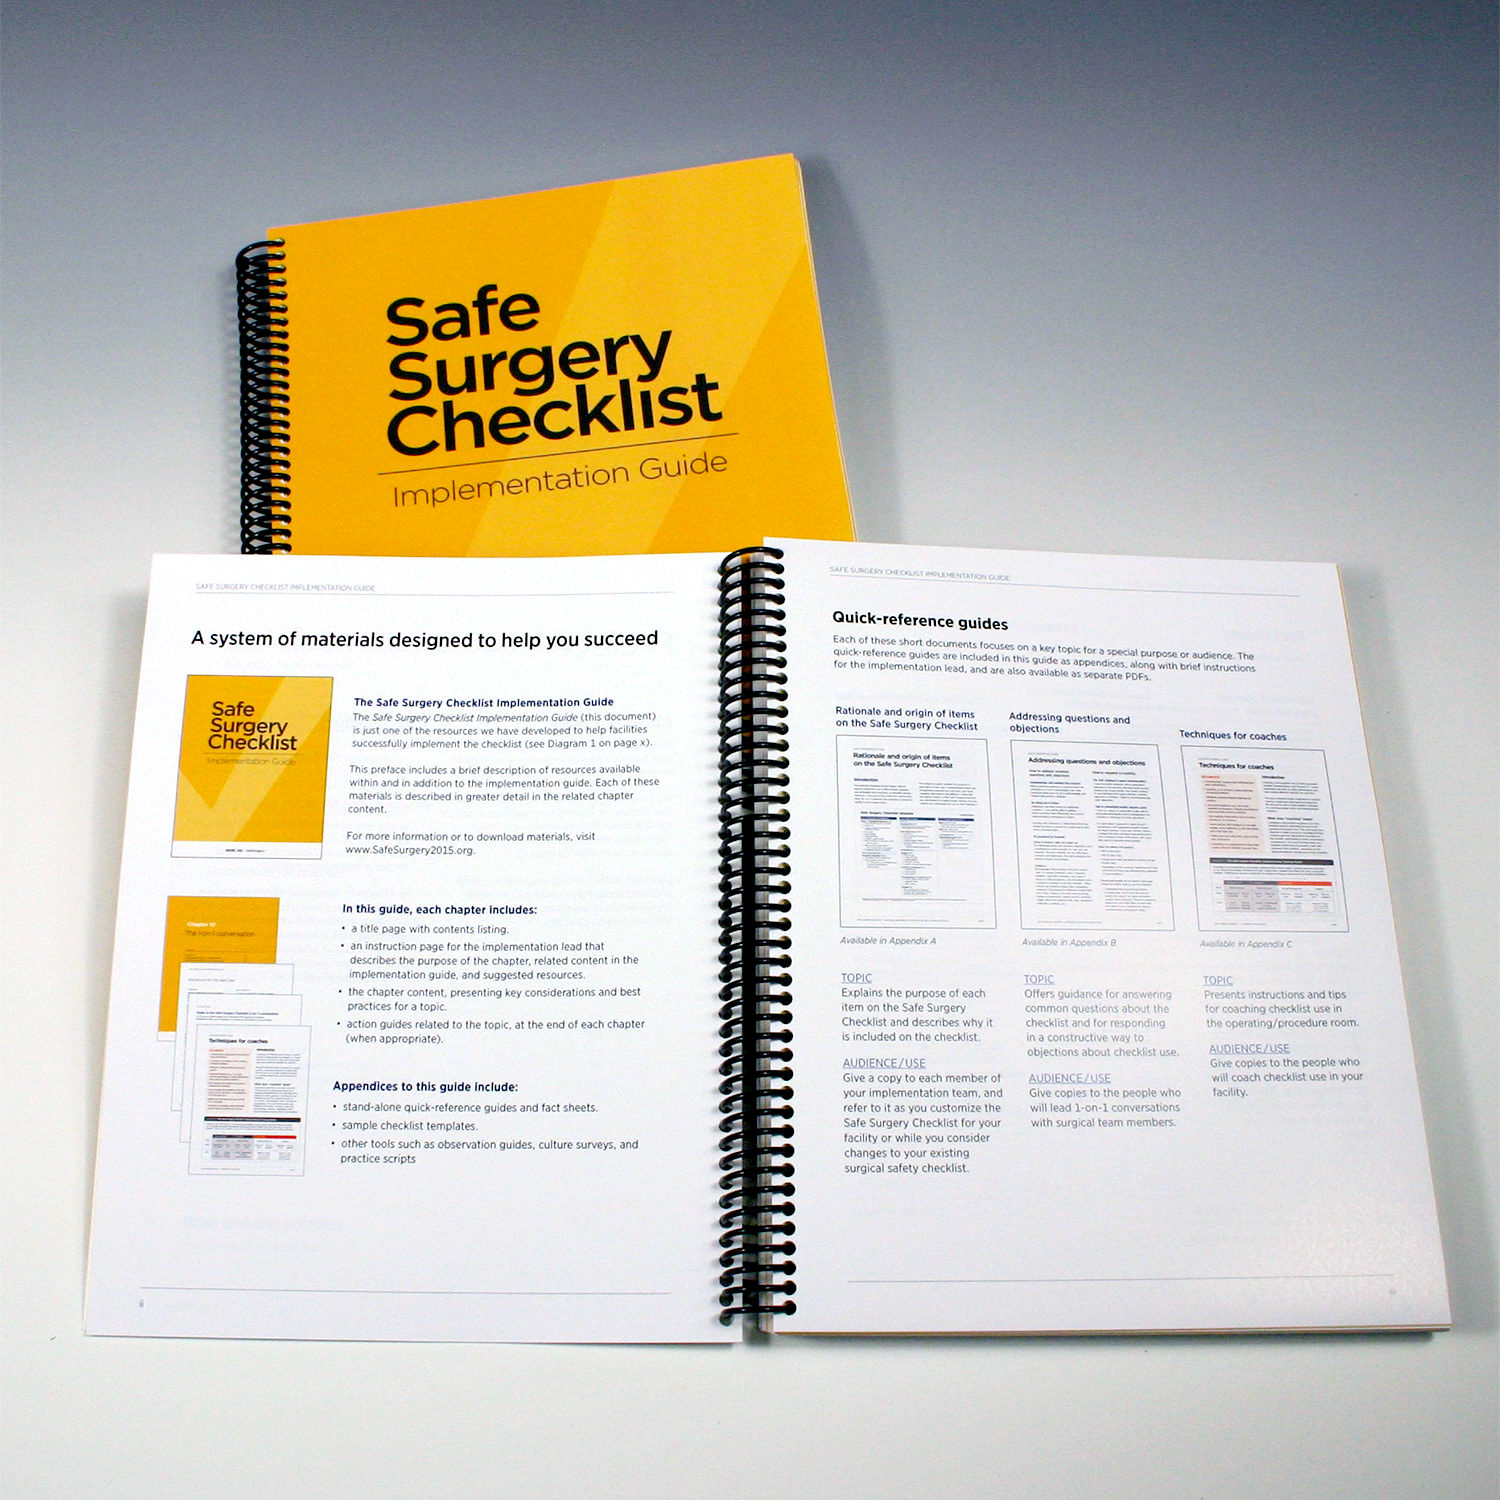 Safe Surgery Checklist Implementation Guide